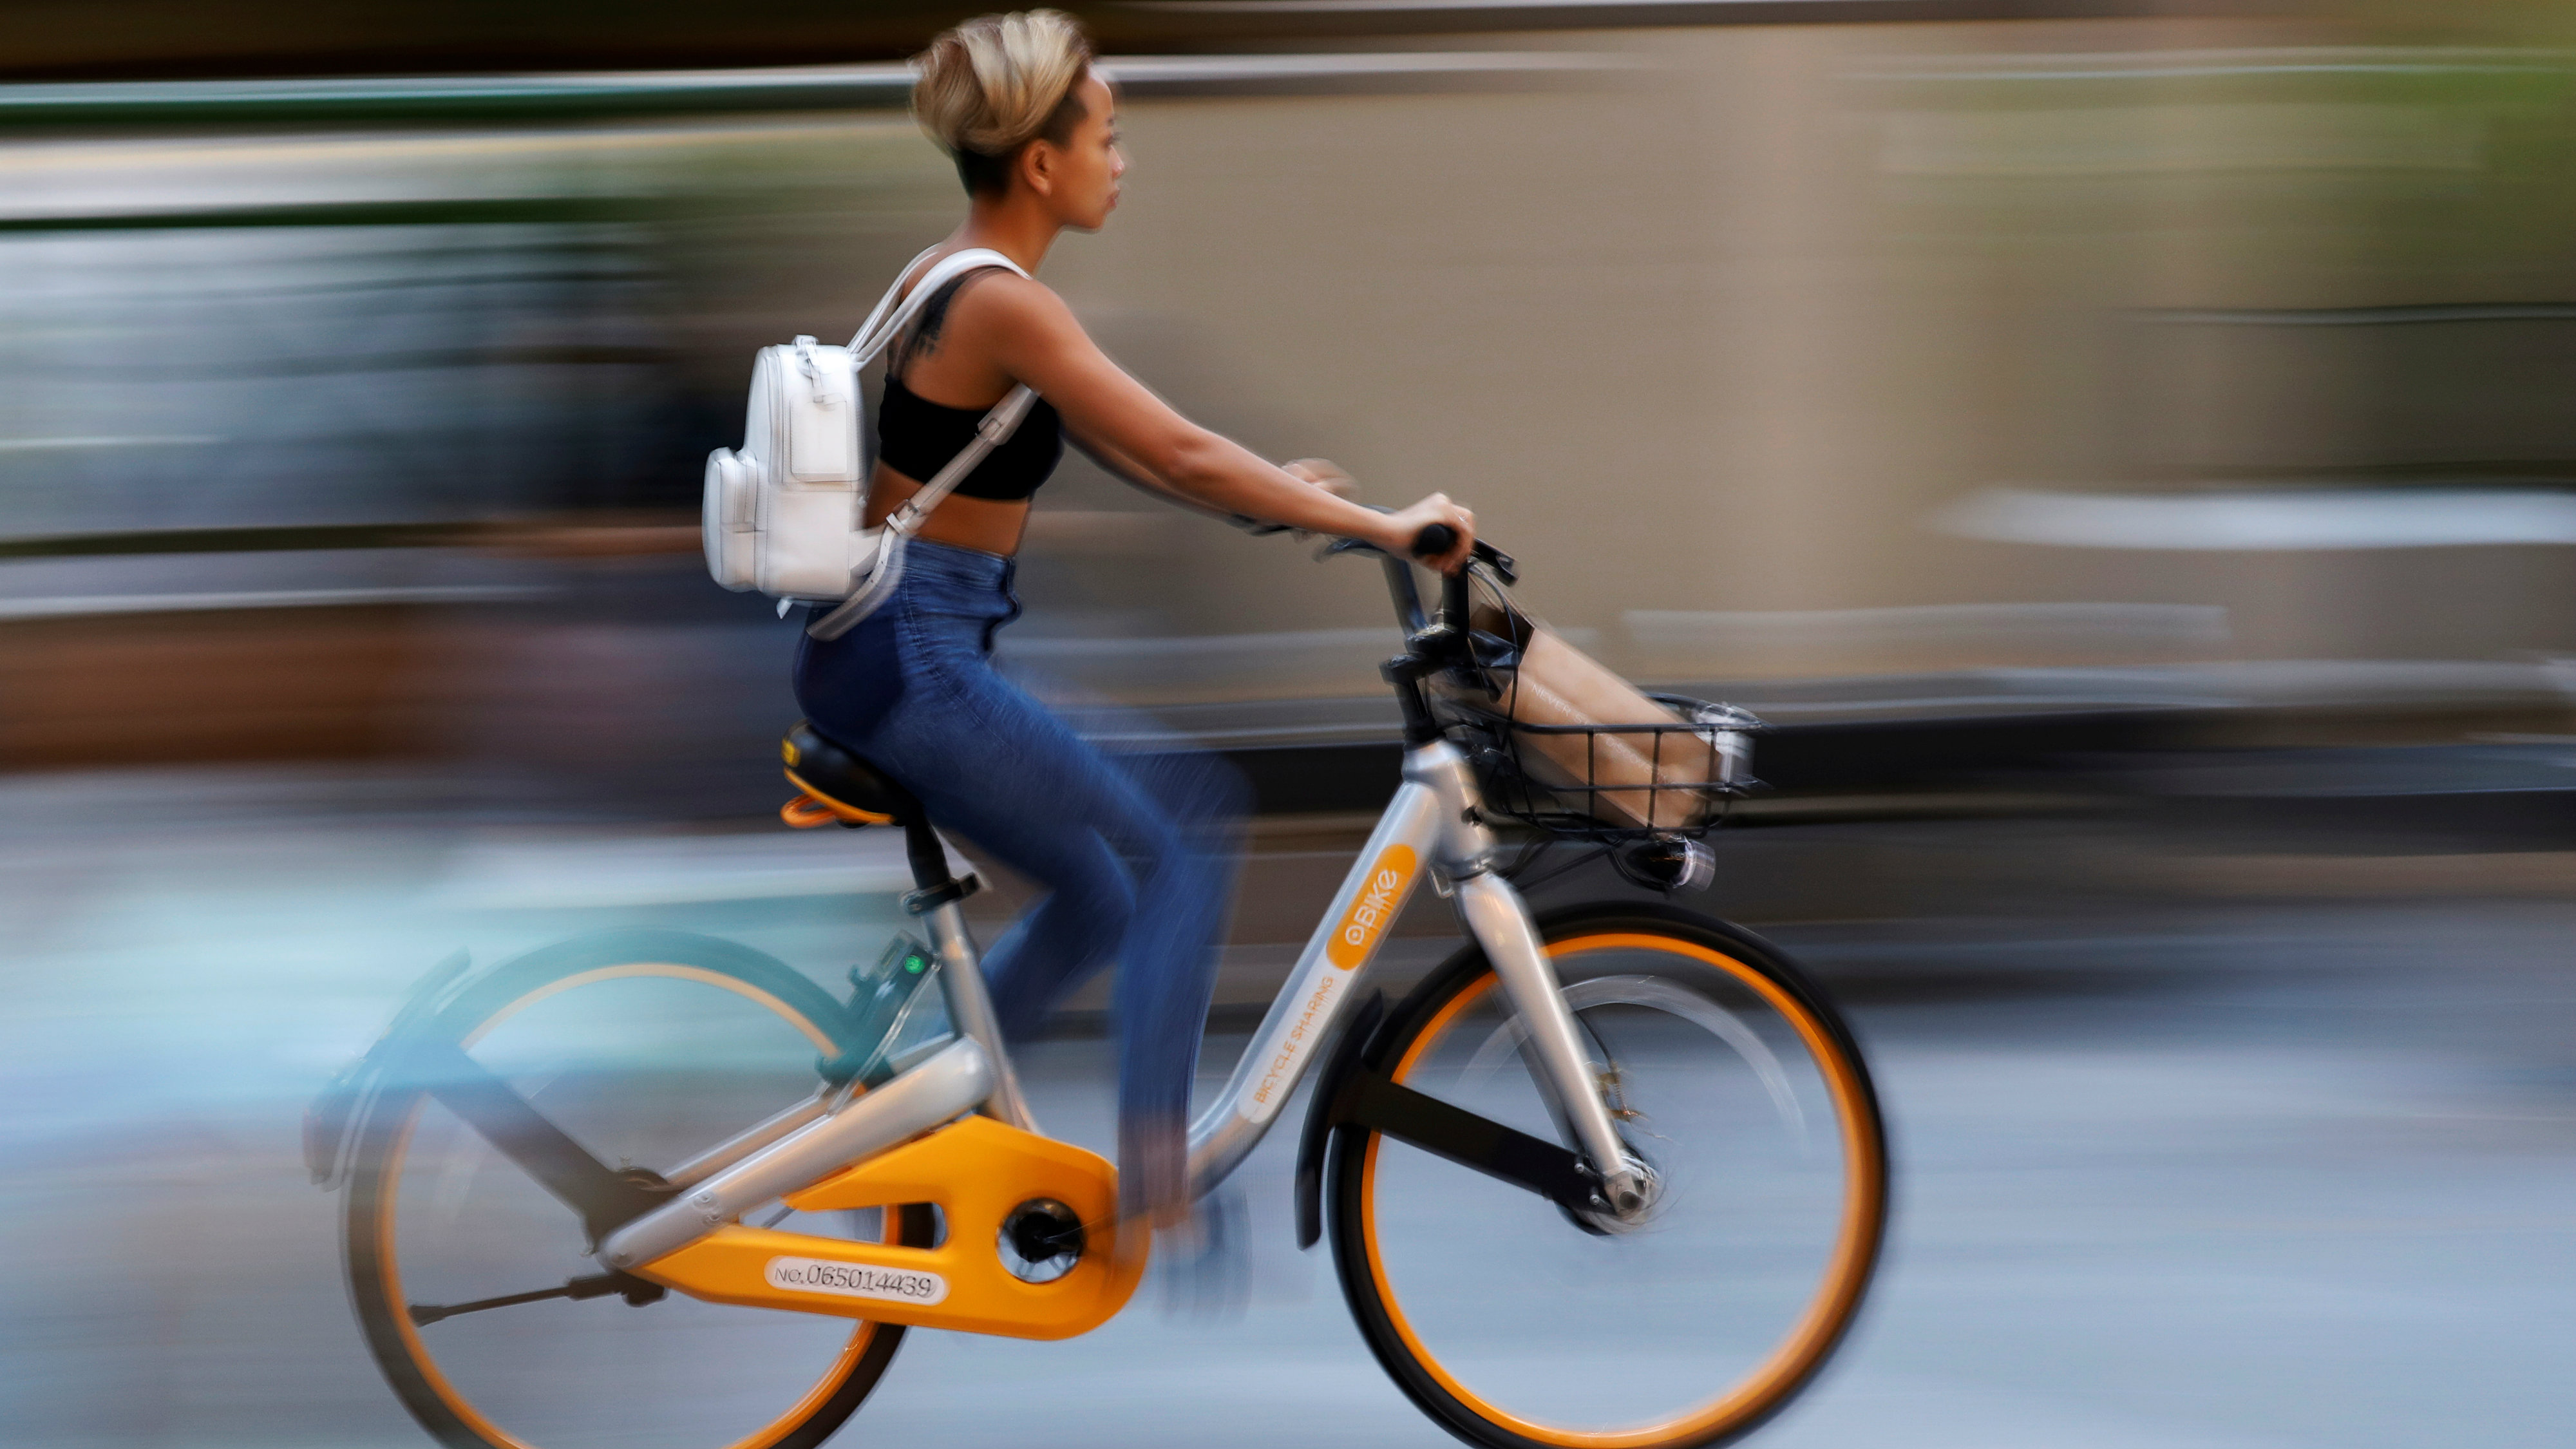 You Could Earn Cryptocurrency Riding A Bike Next Year